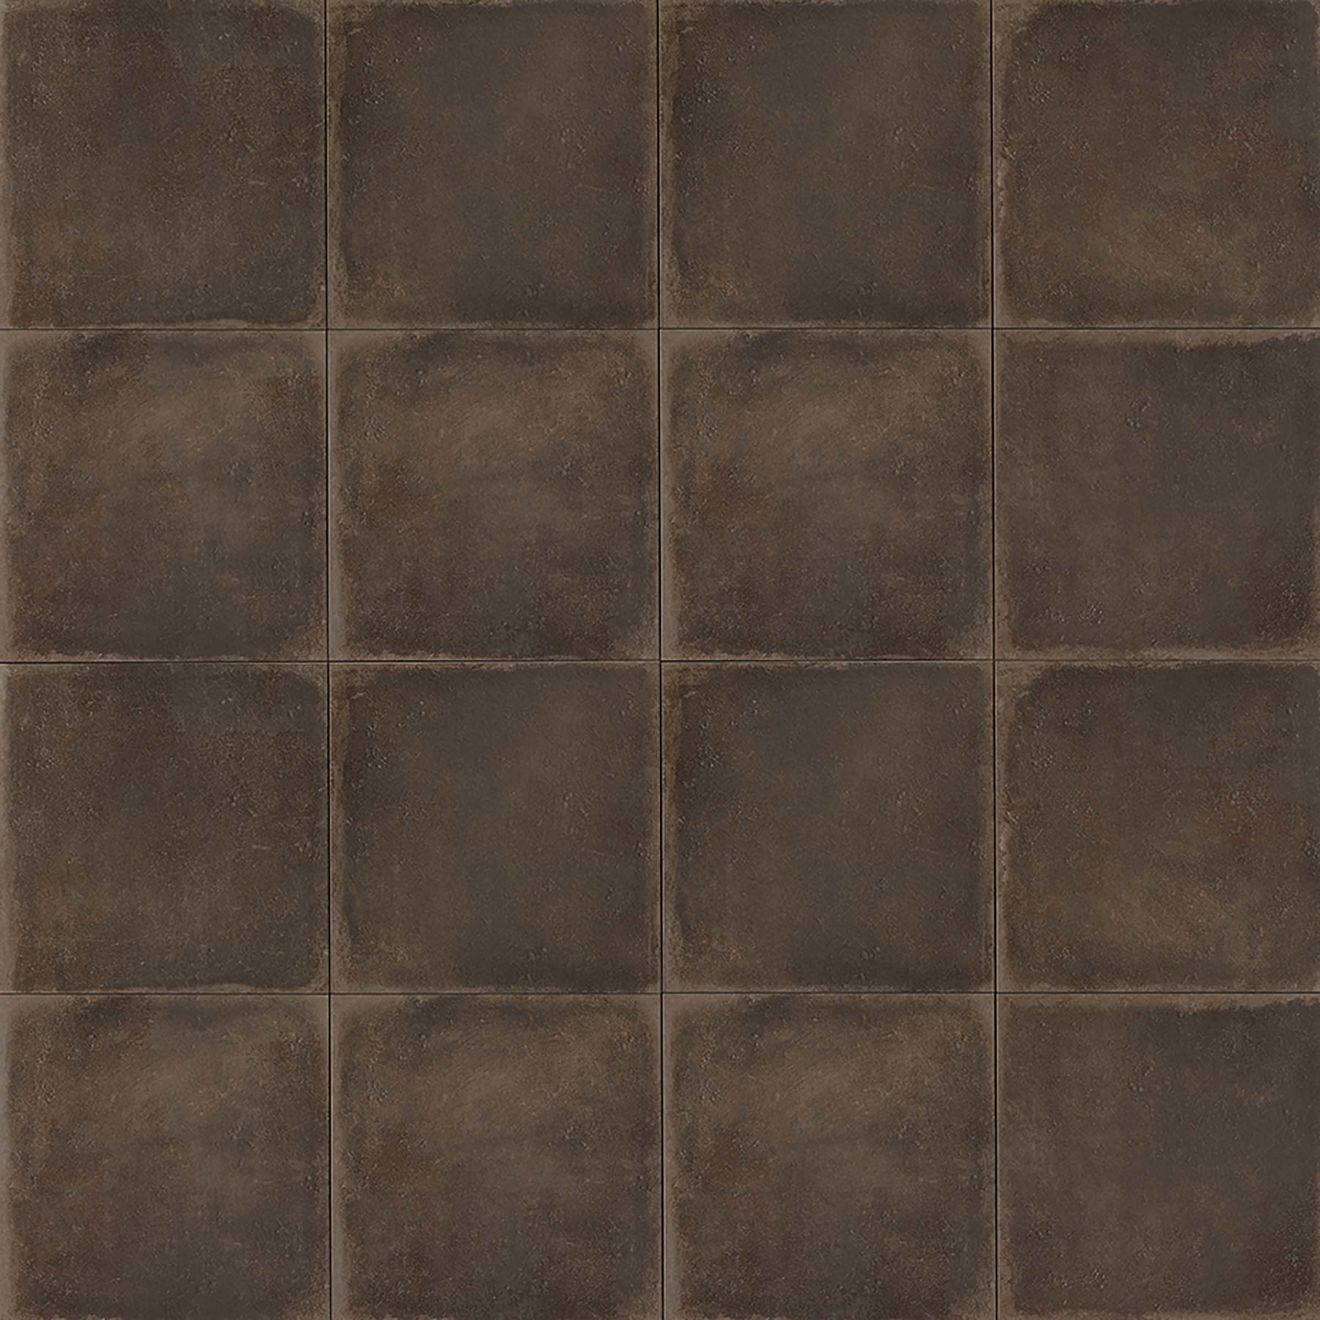 Palazzo 12 Quot X 12 Quot Floor Amp Wall Tile In Antique Cotto